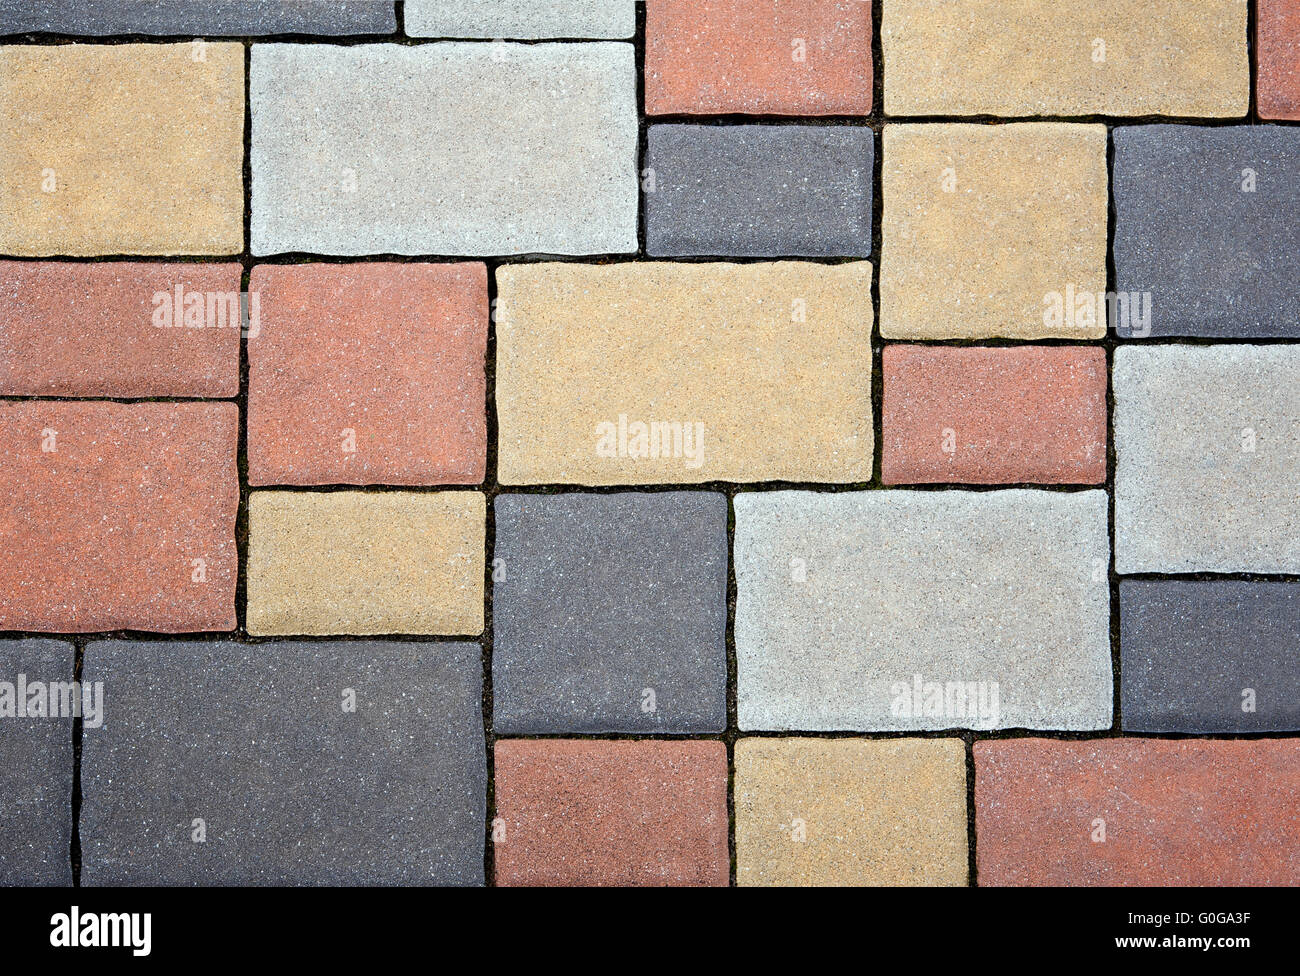 Flooring Stock Photos Amp Flooring Stock Images Alamy